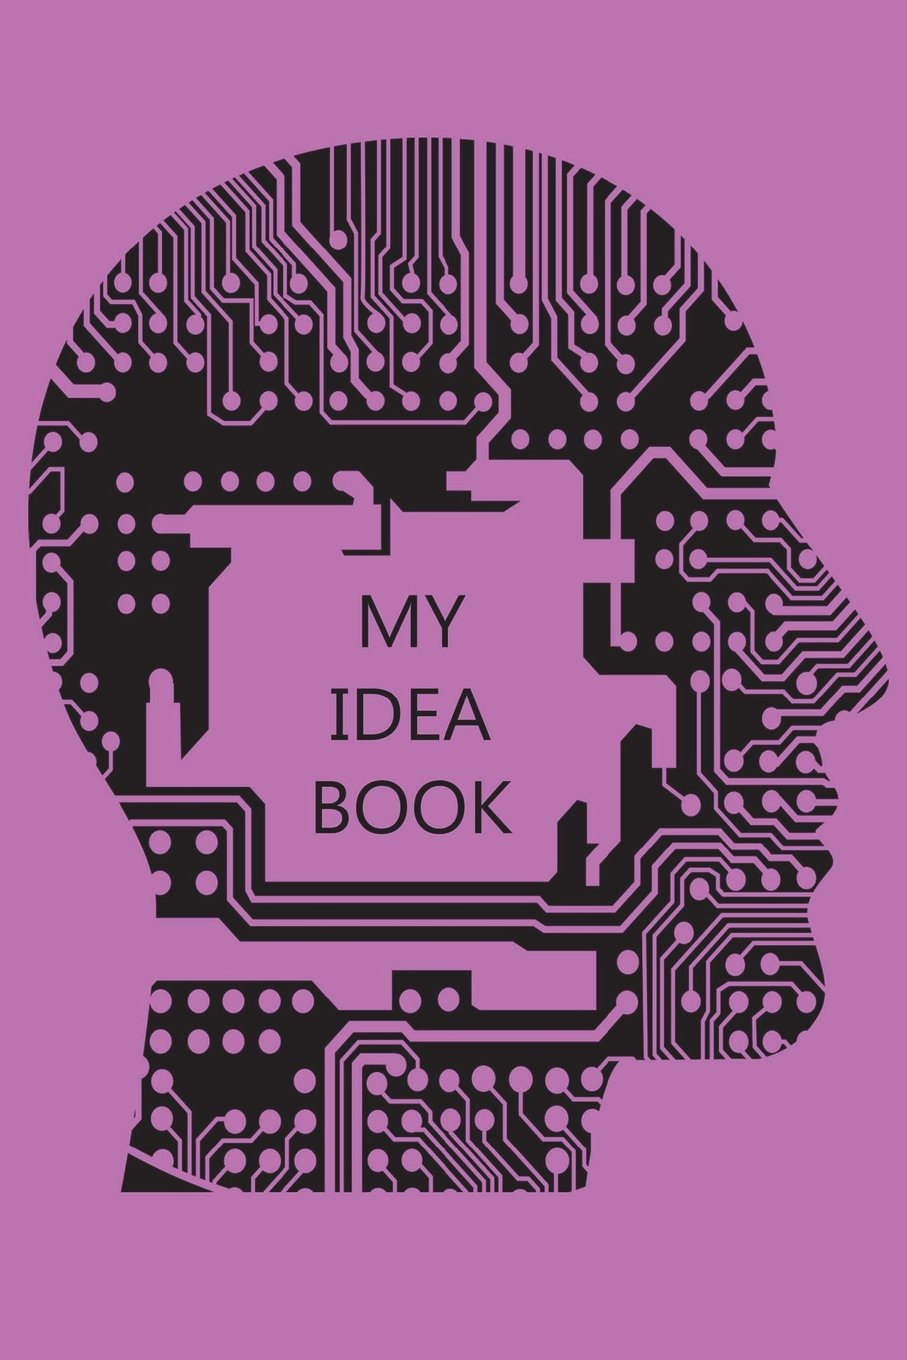 My Idea Book Pink and Black 6 x 9 Blank Lined Journal: Cranium Circuit Board Writing Notebook 150 Pages pdf